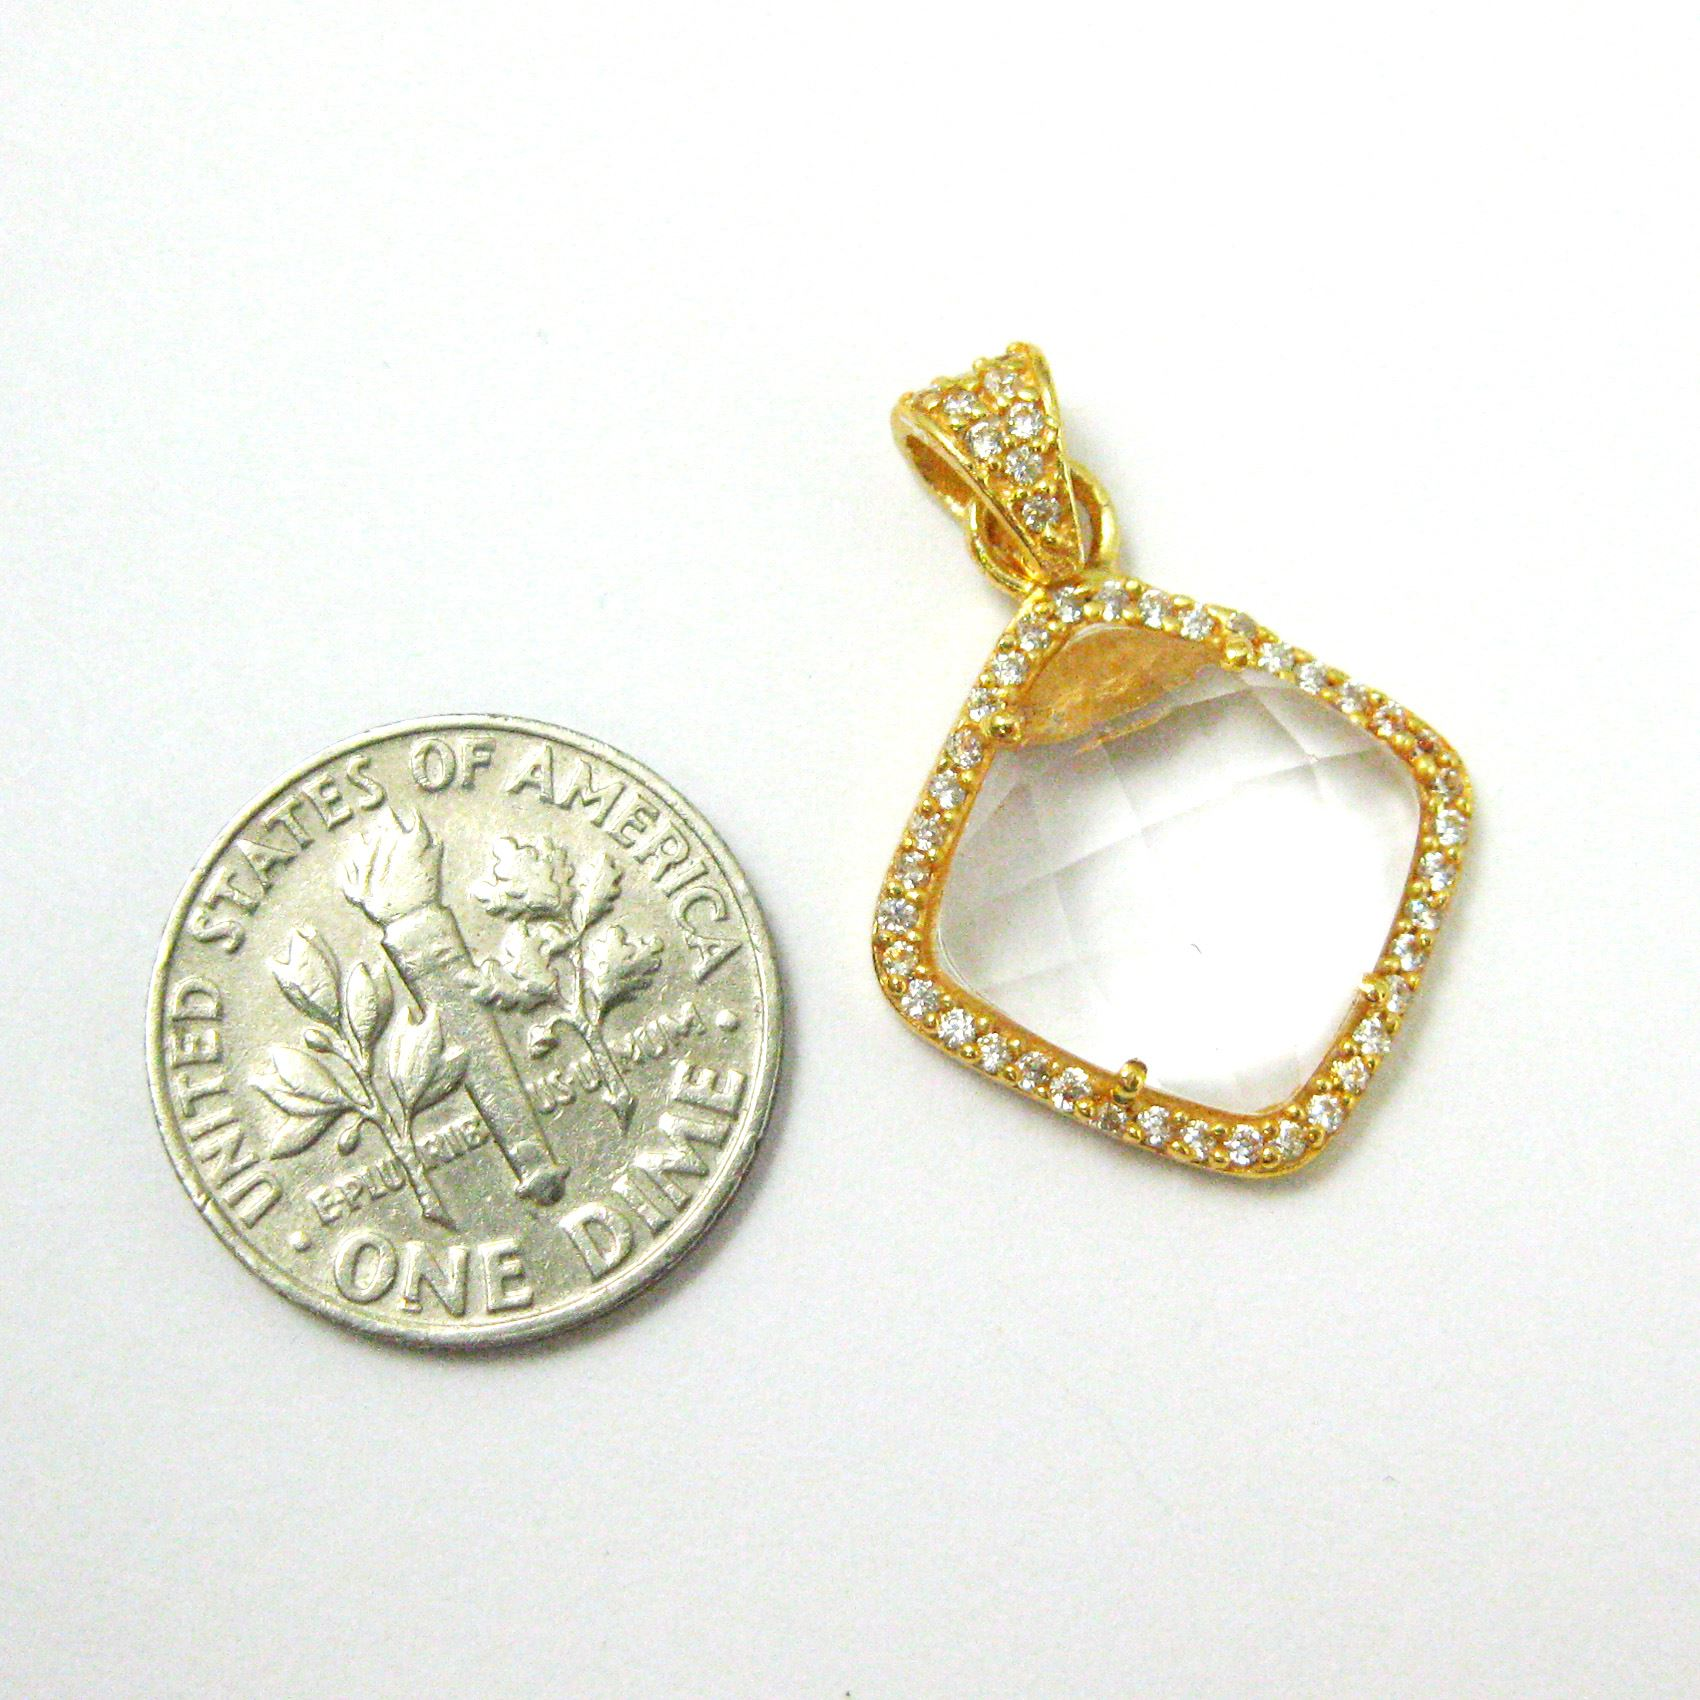 Gold plated Sterling Silver Pave Bezel Gemstone Pendant - Cubic Zirconia Pave Setting -  Diamond Shape Faceted Stone- Crystal Quartz - 17mm